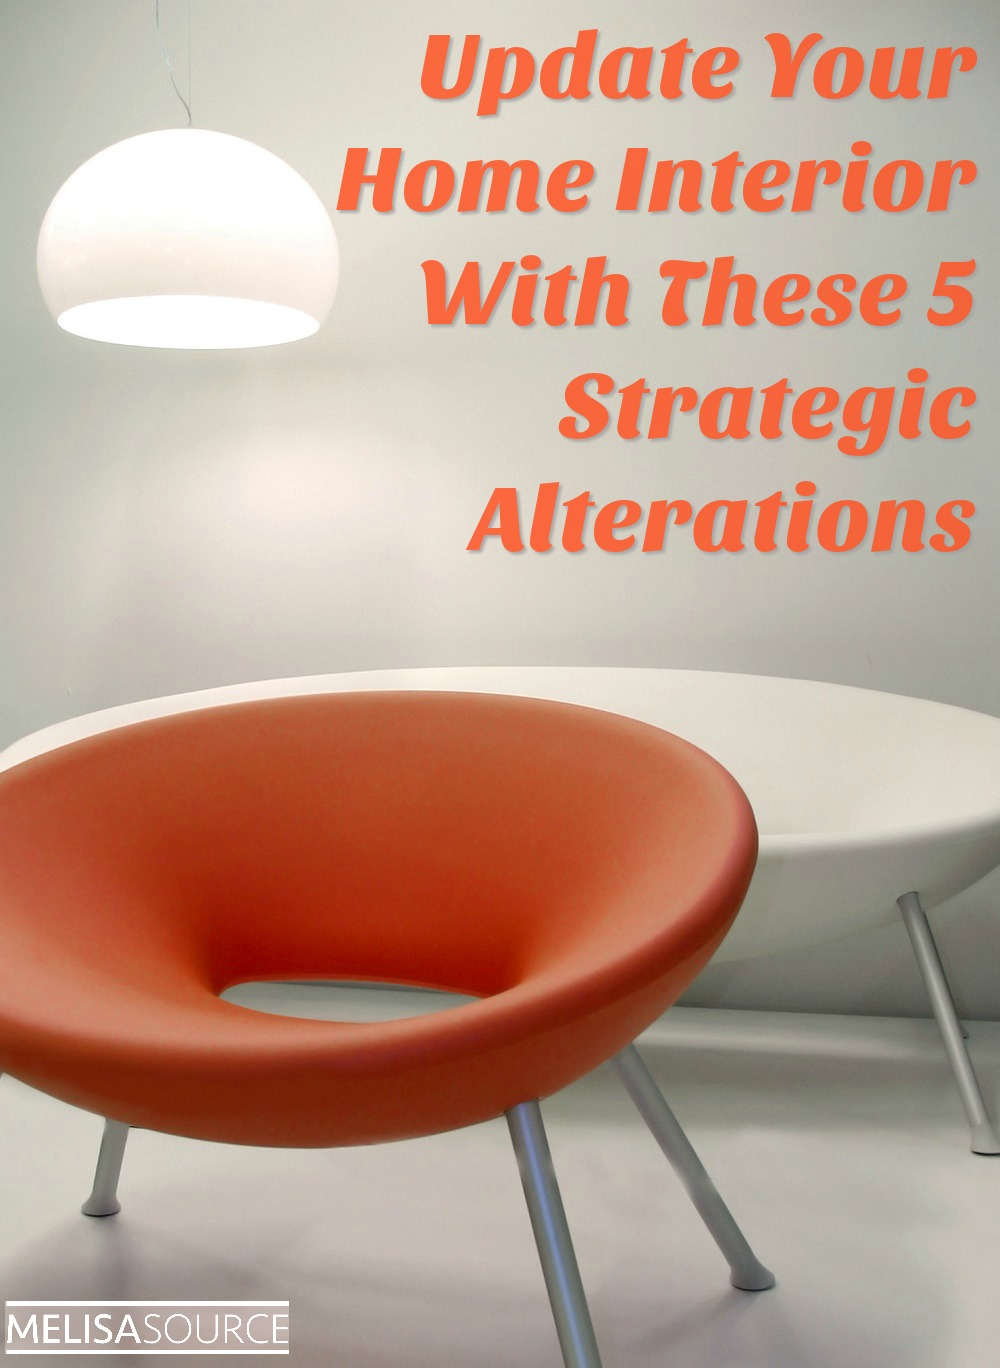 Update Your Home Interior With These 5 Strategic Alterations